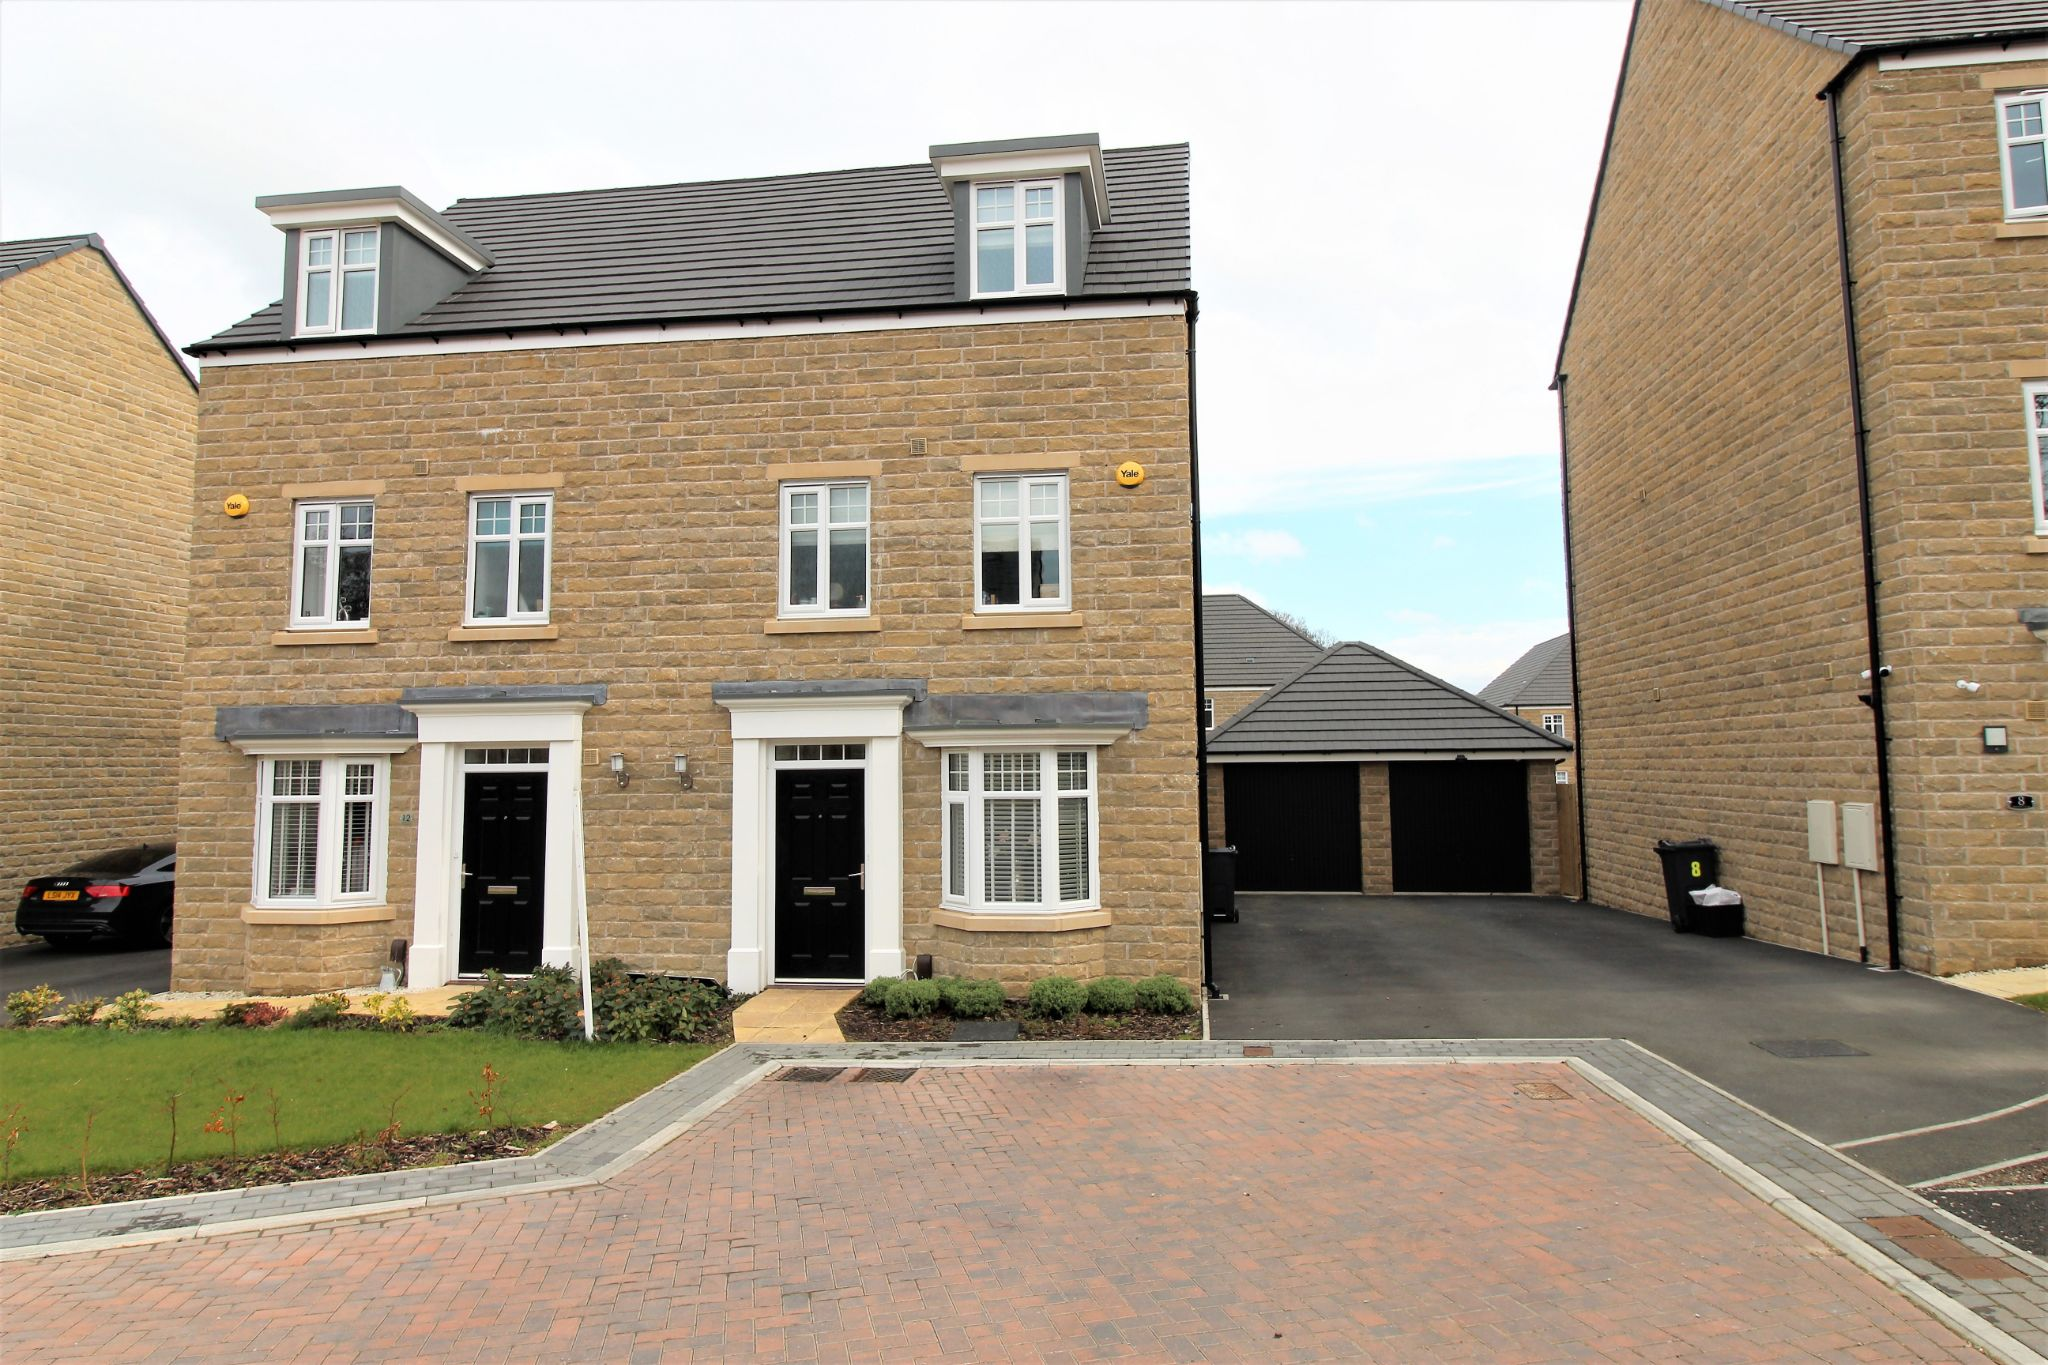 4 bedroom semi-detached house For Sale in Halifax - Front aspect